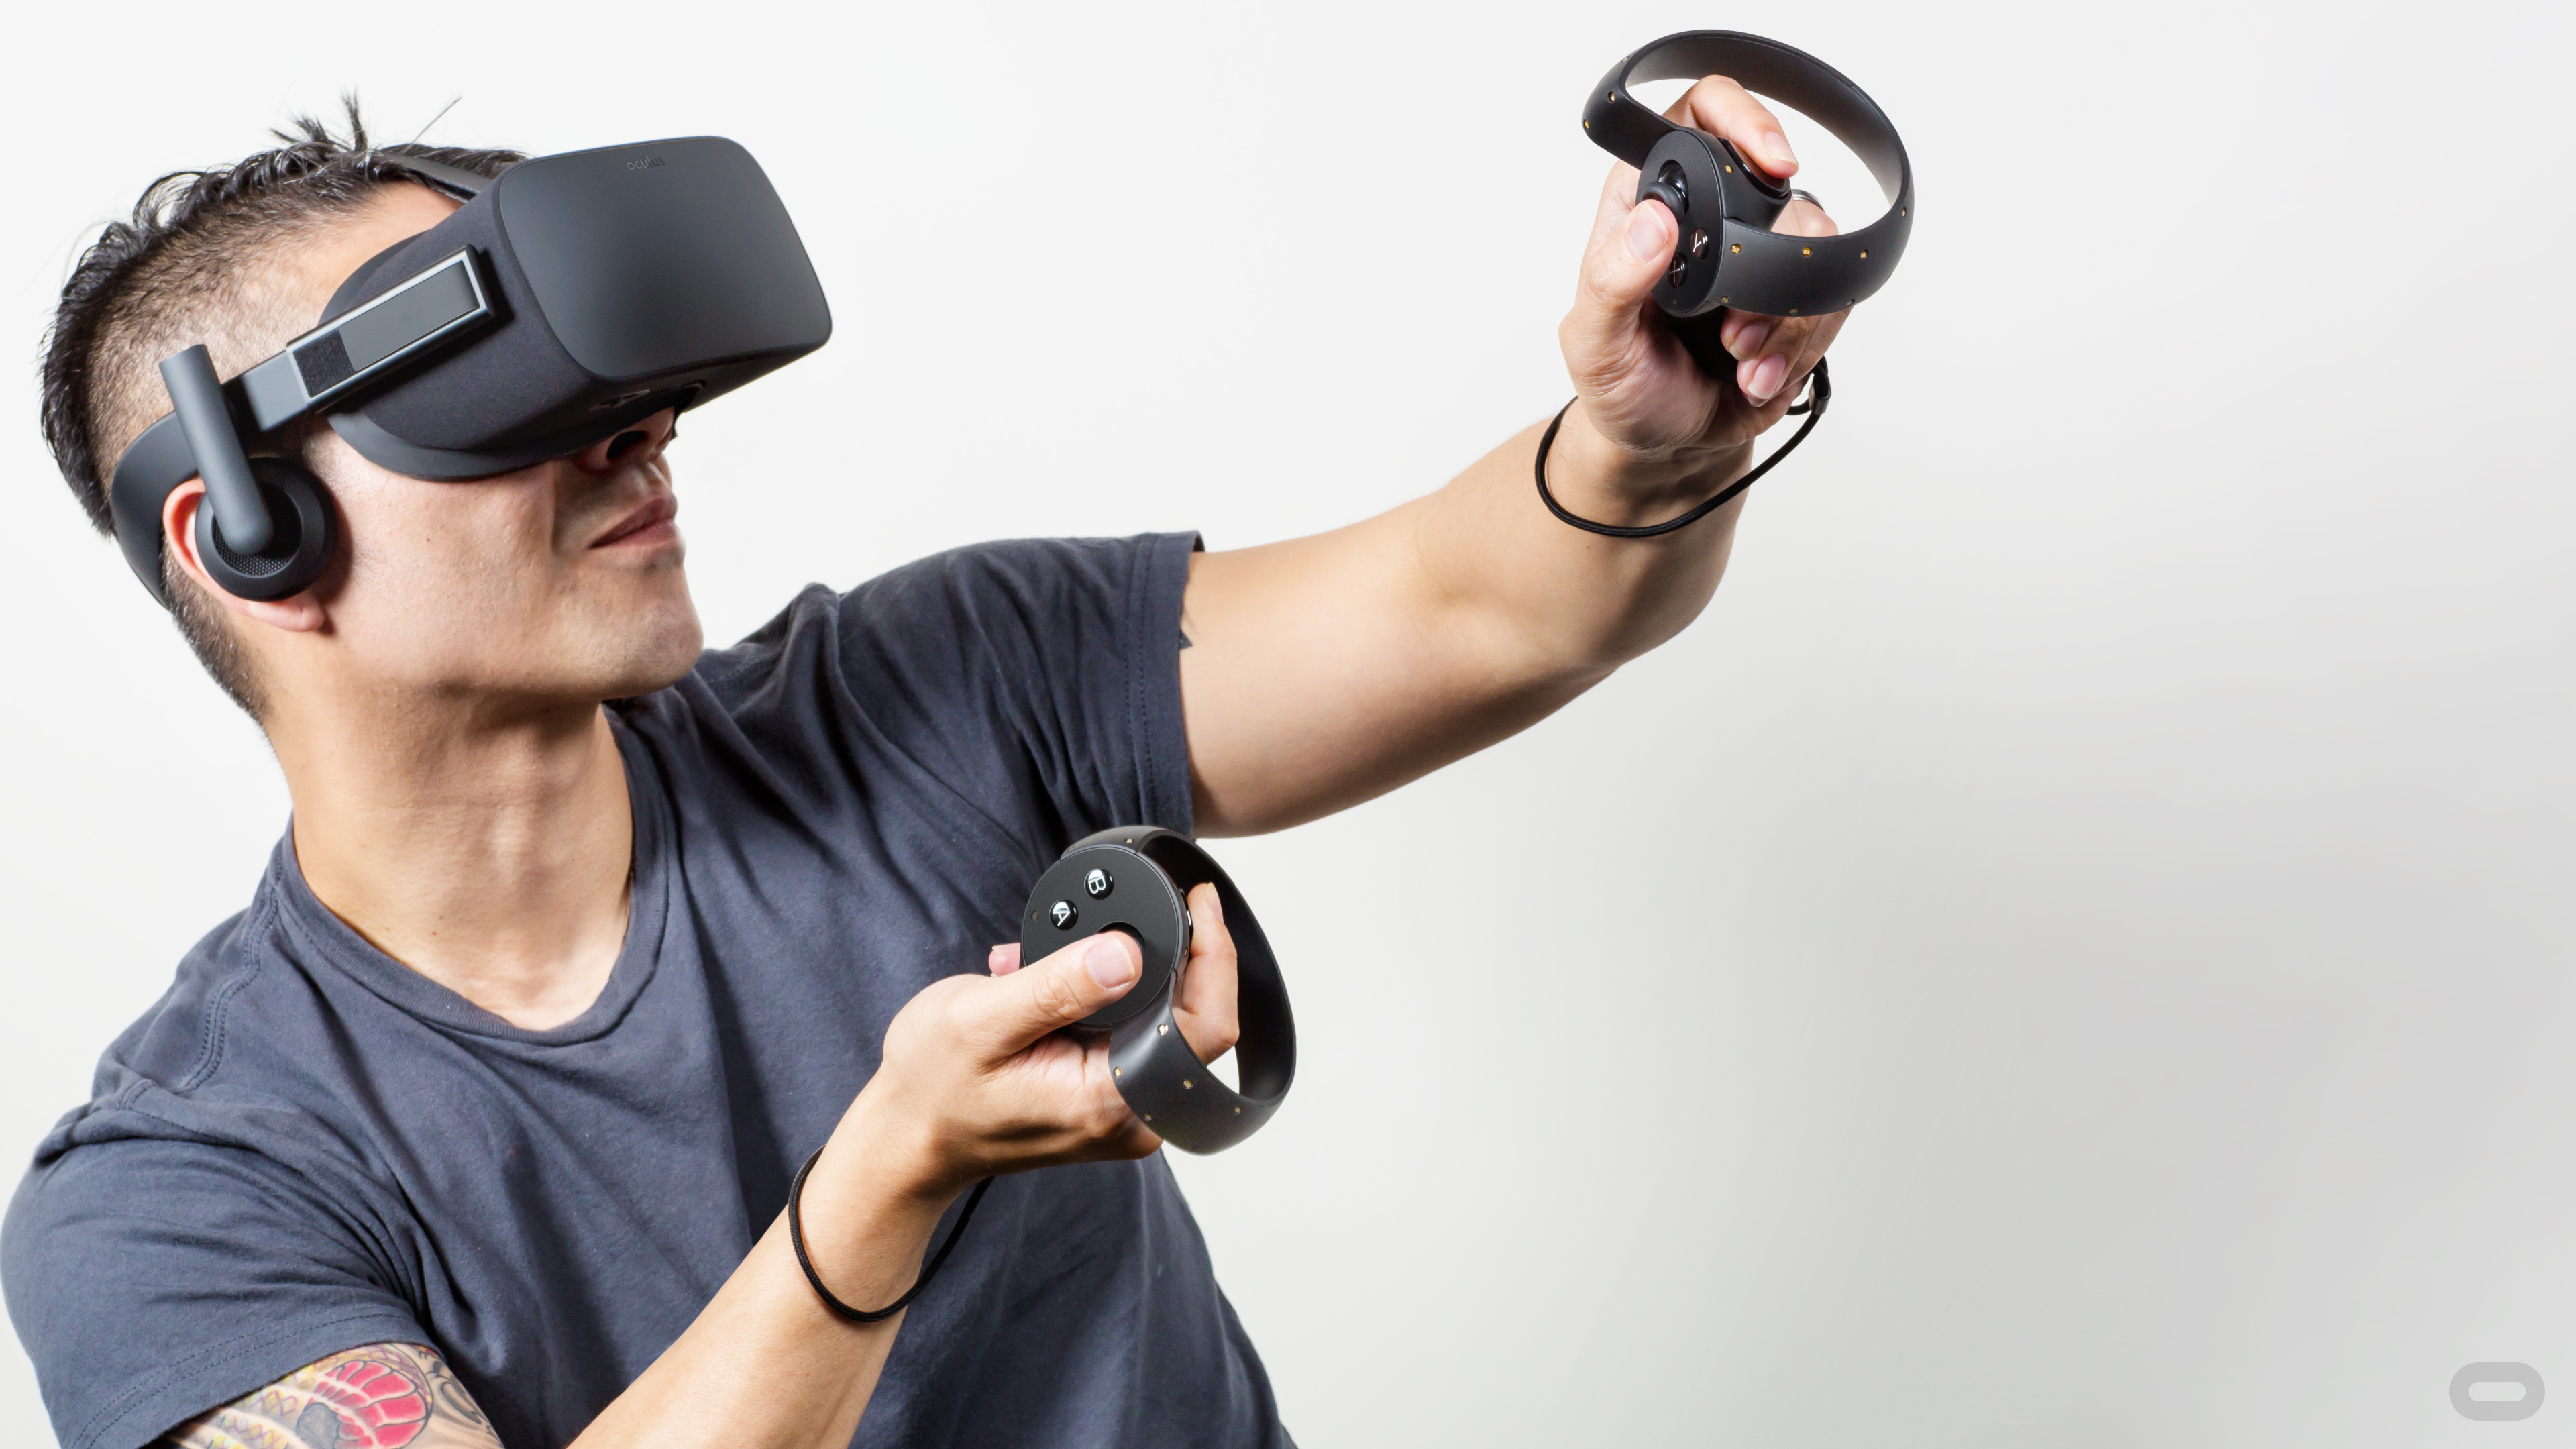 Facebook-owned Oculus VR will launch Oculus Rift in 2016.